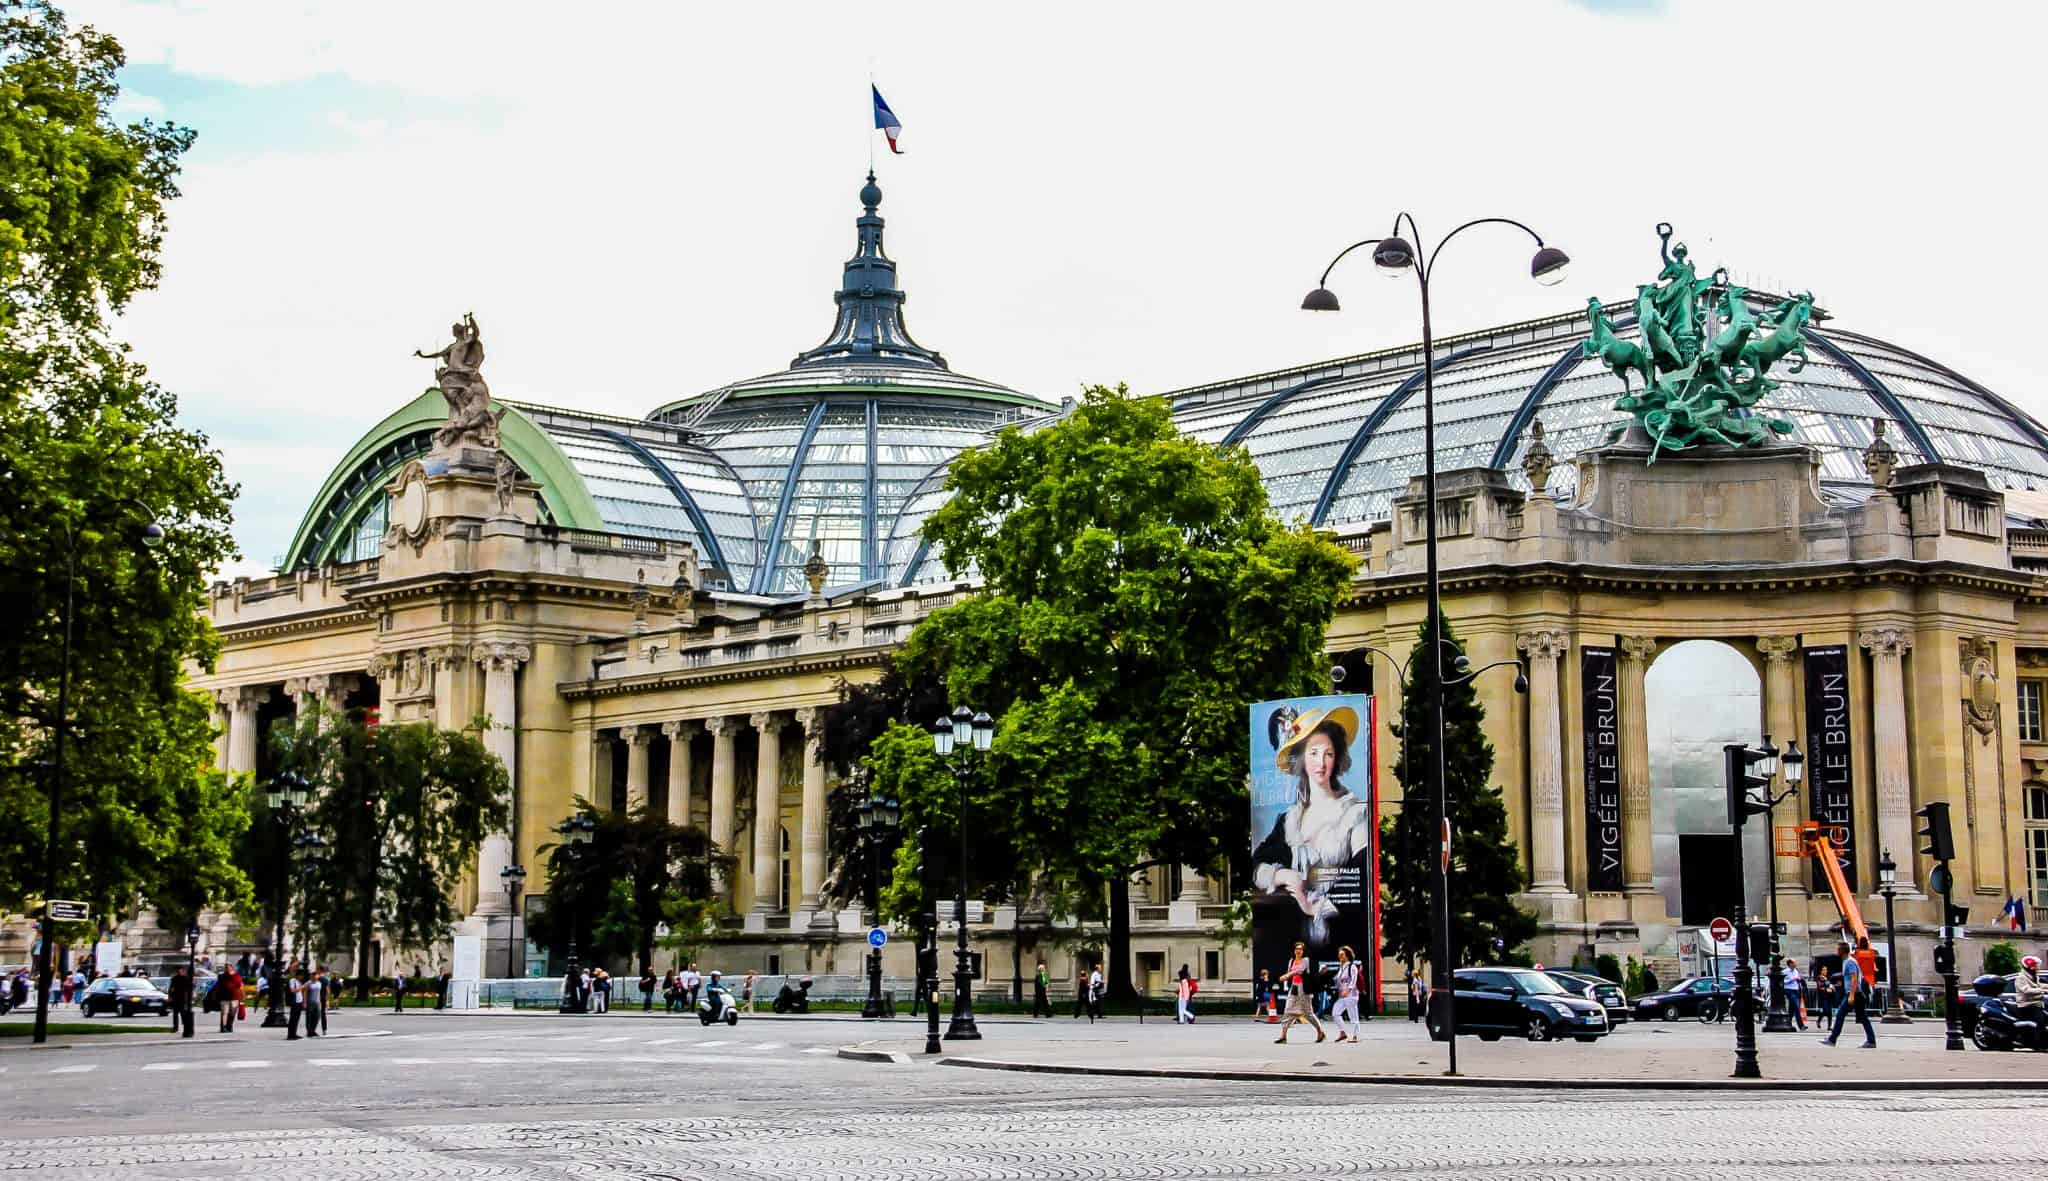 The Grand Palais in Paris, what to visit in Paris in 4 days